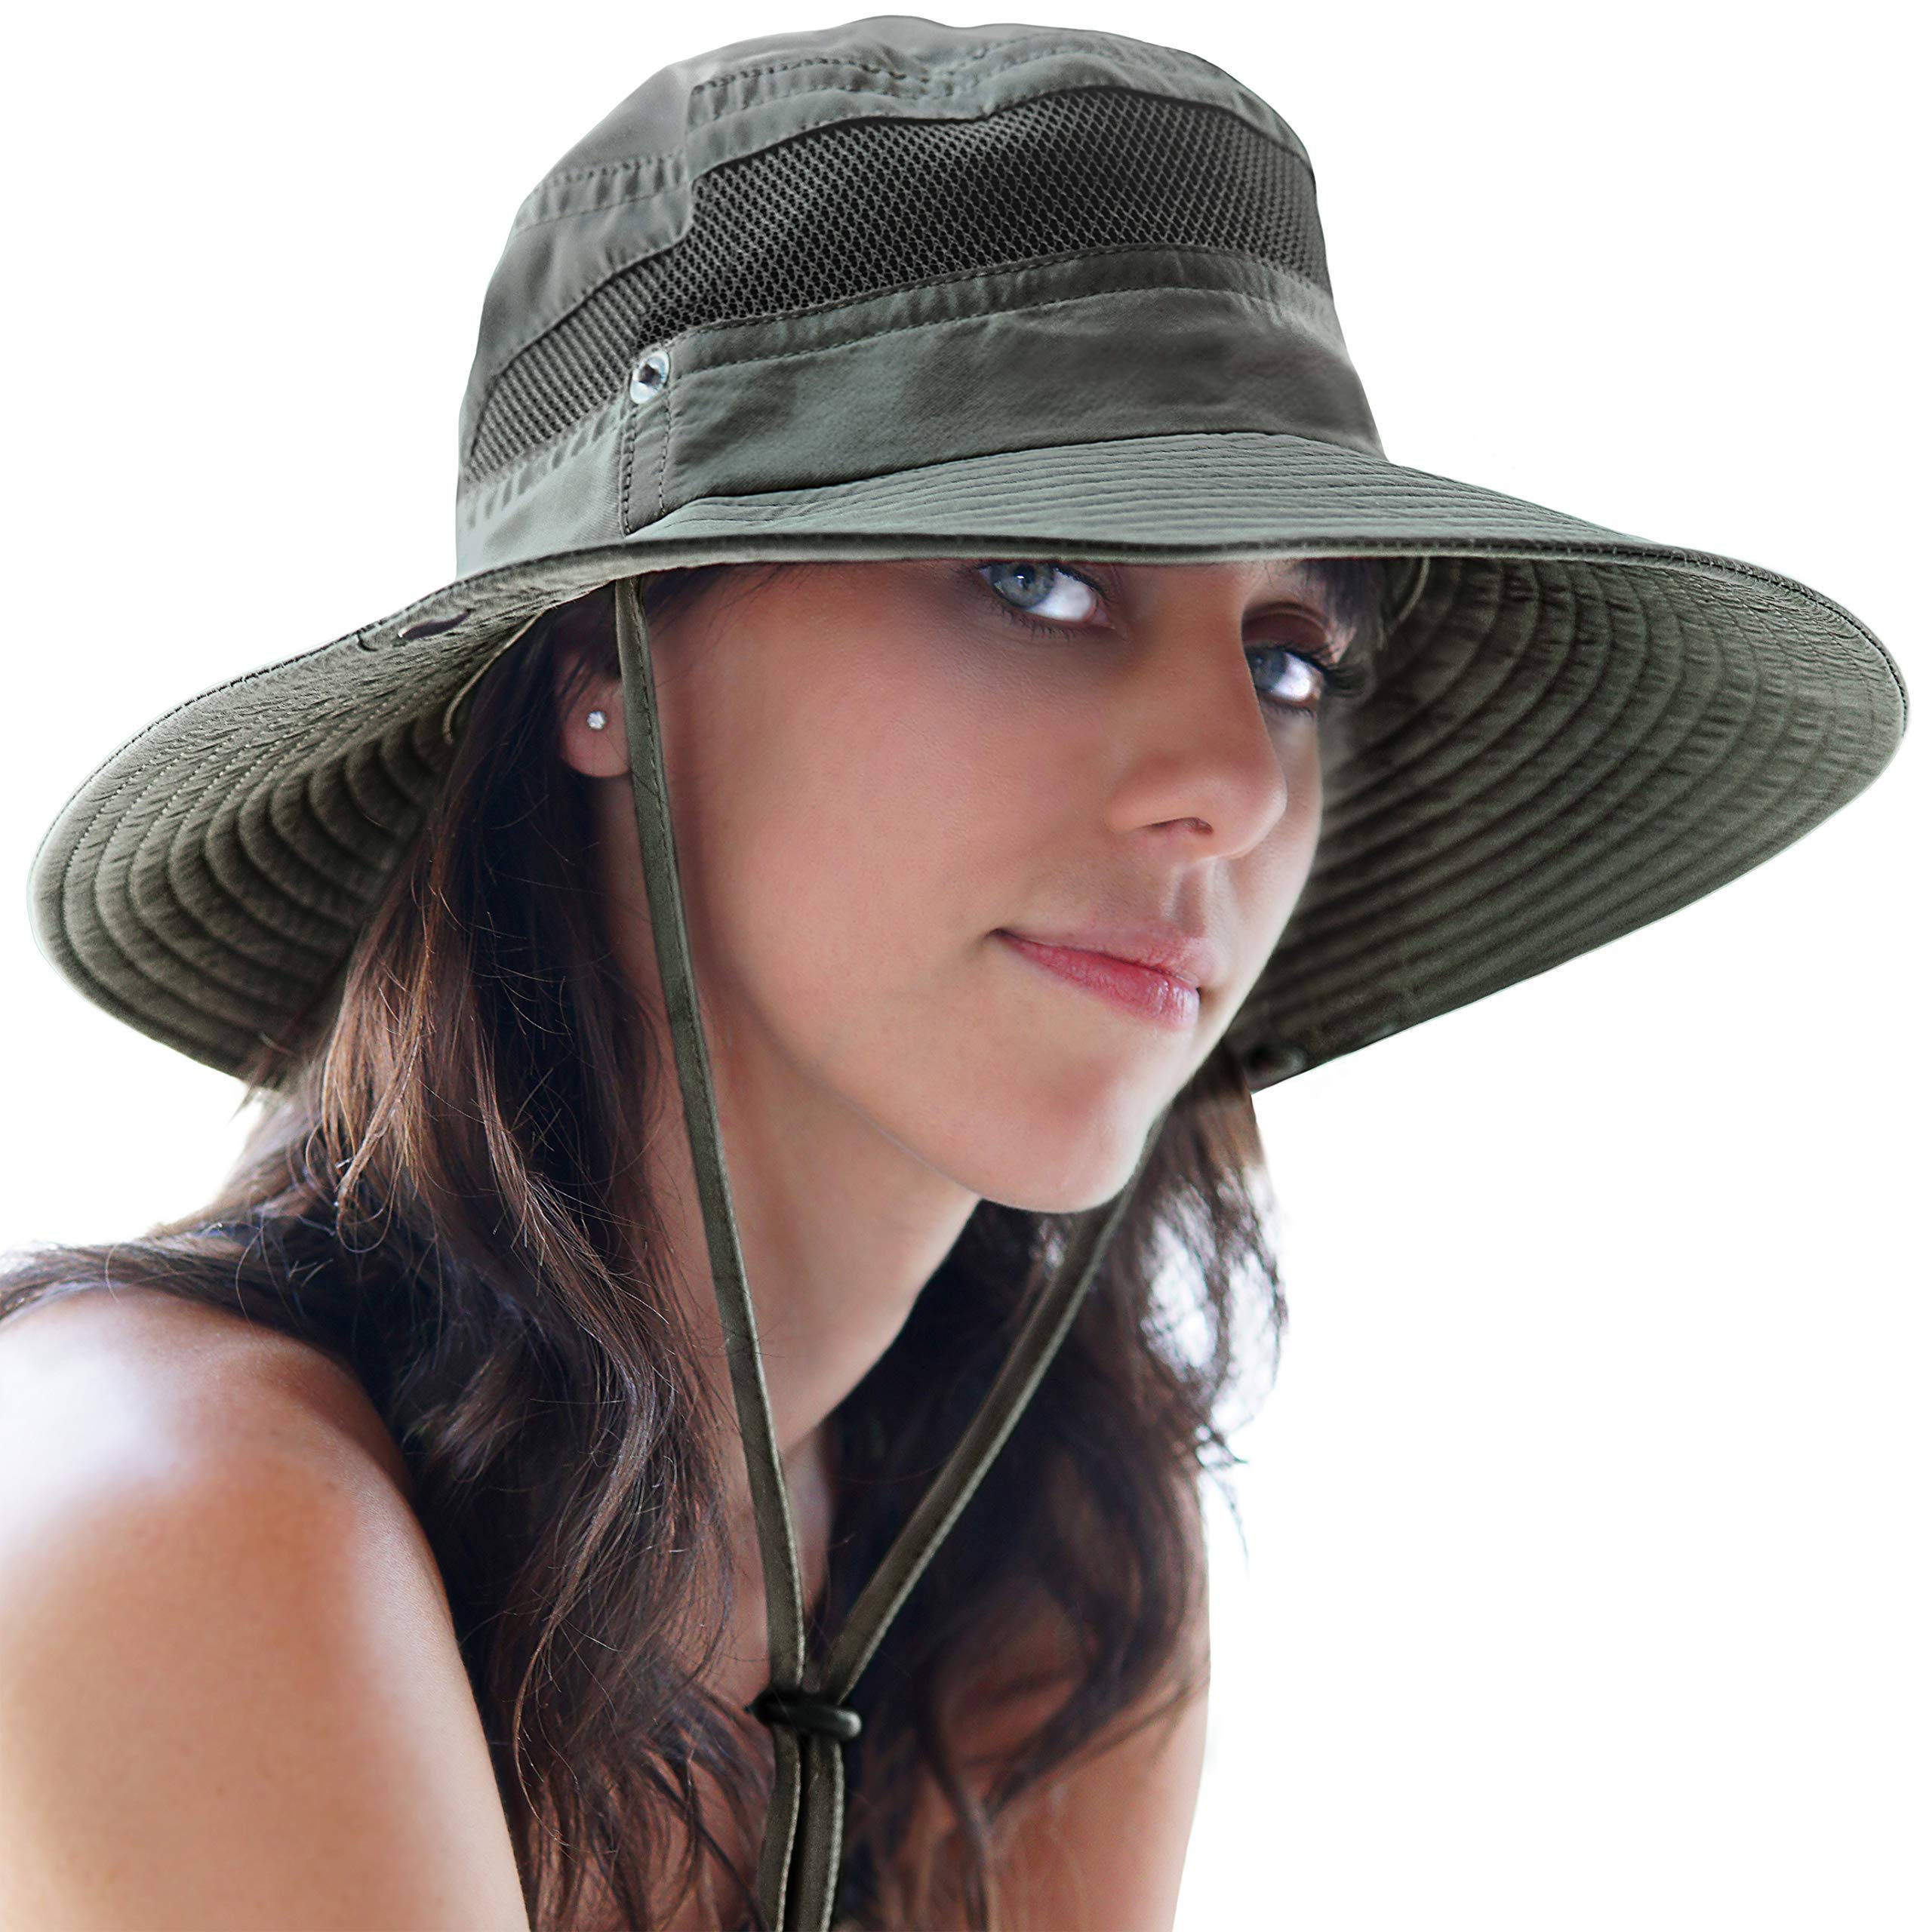 Fishing Hat Safari Cap with Sun Protection for Men and Women (Army Green) by GearTOP (Image #3)